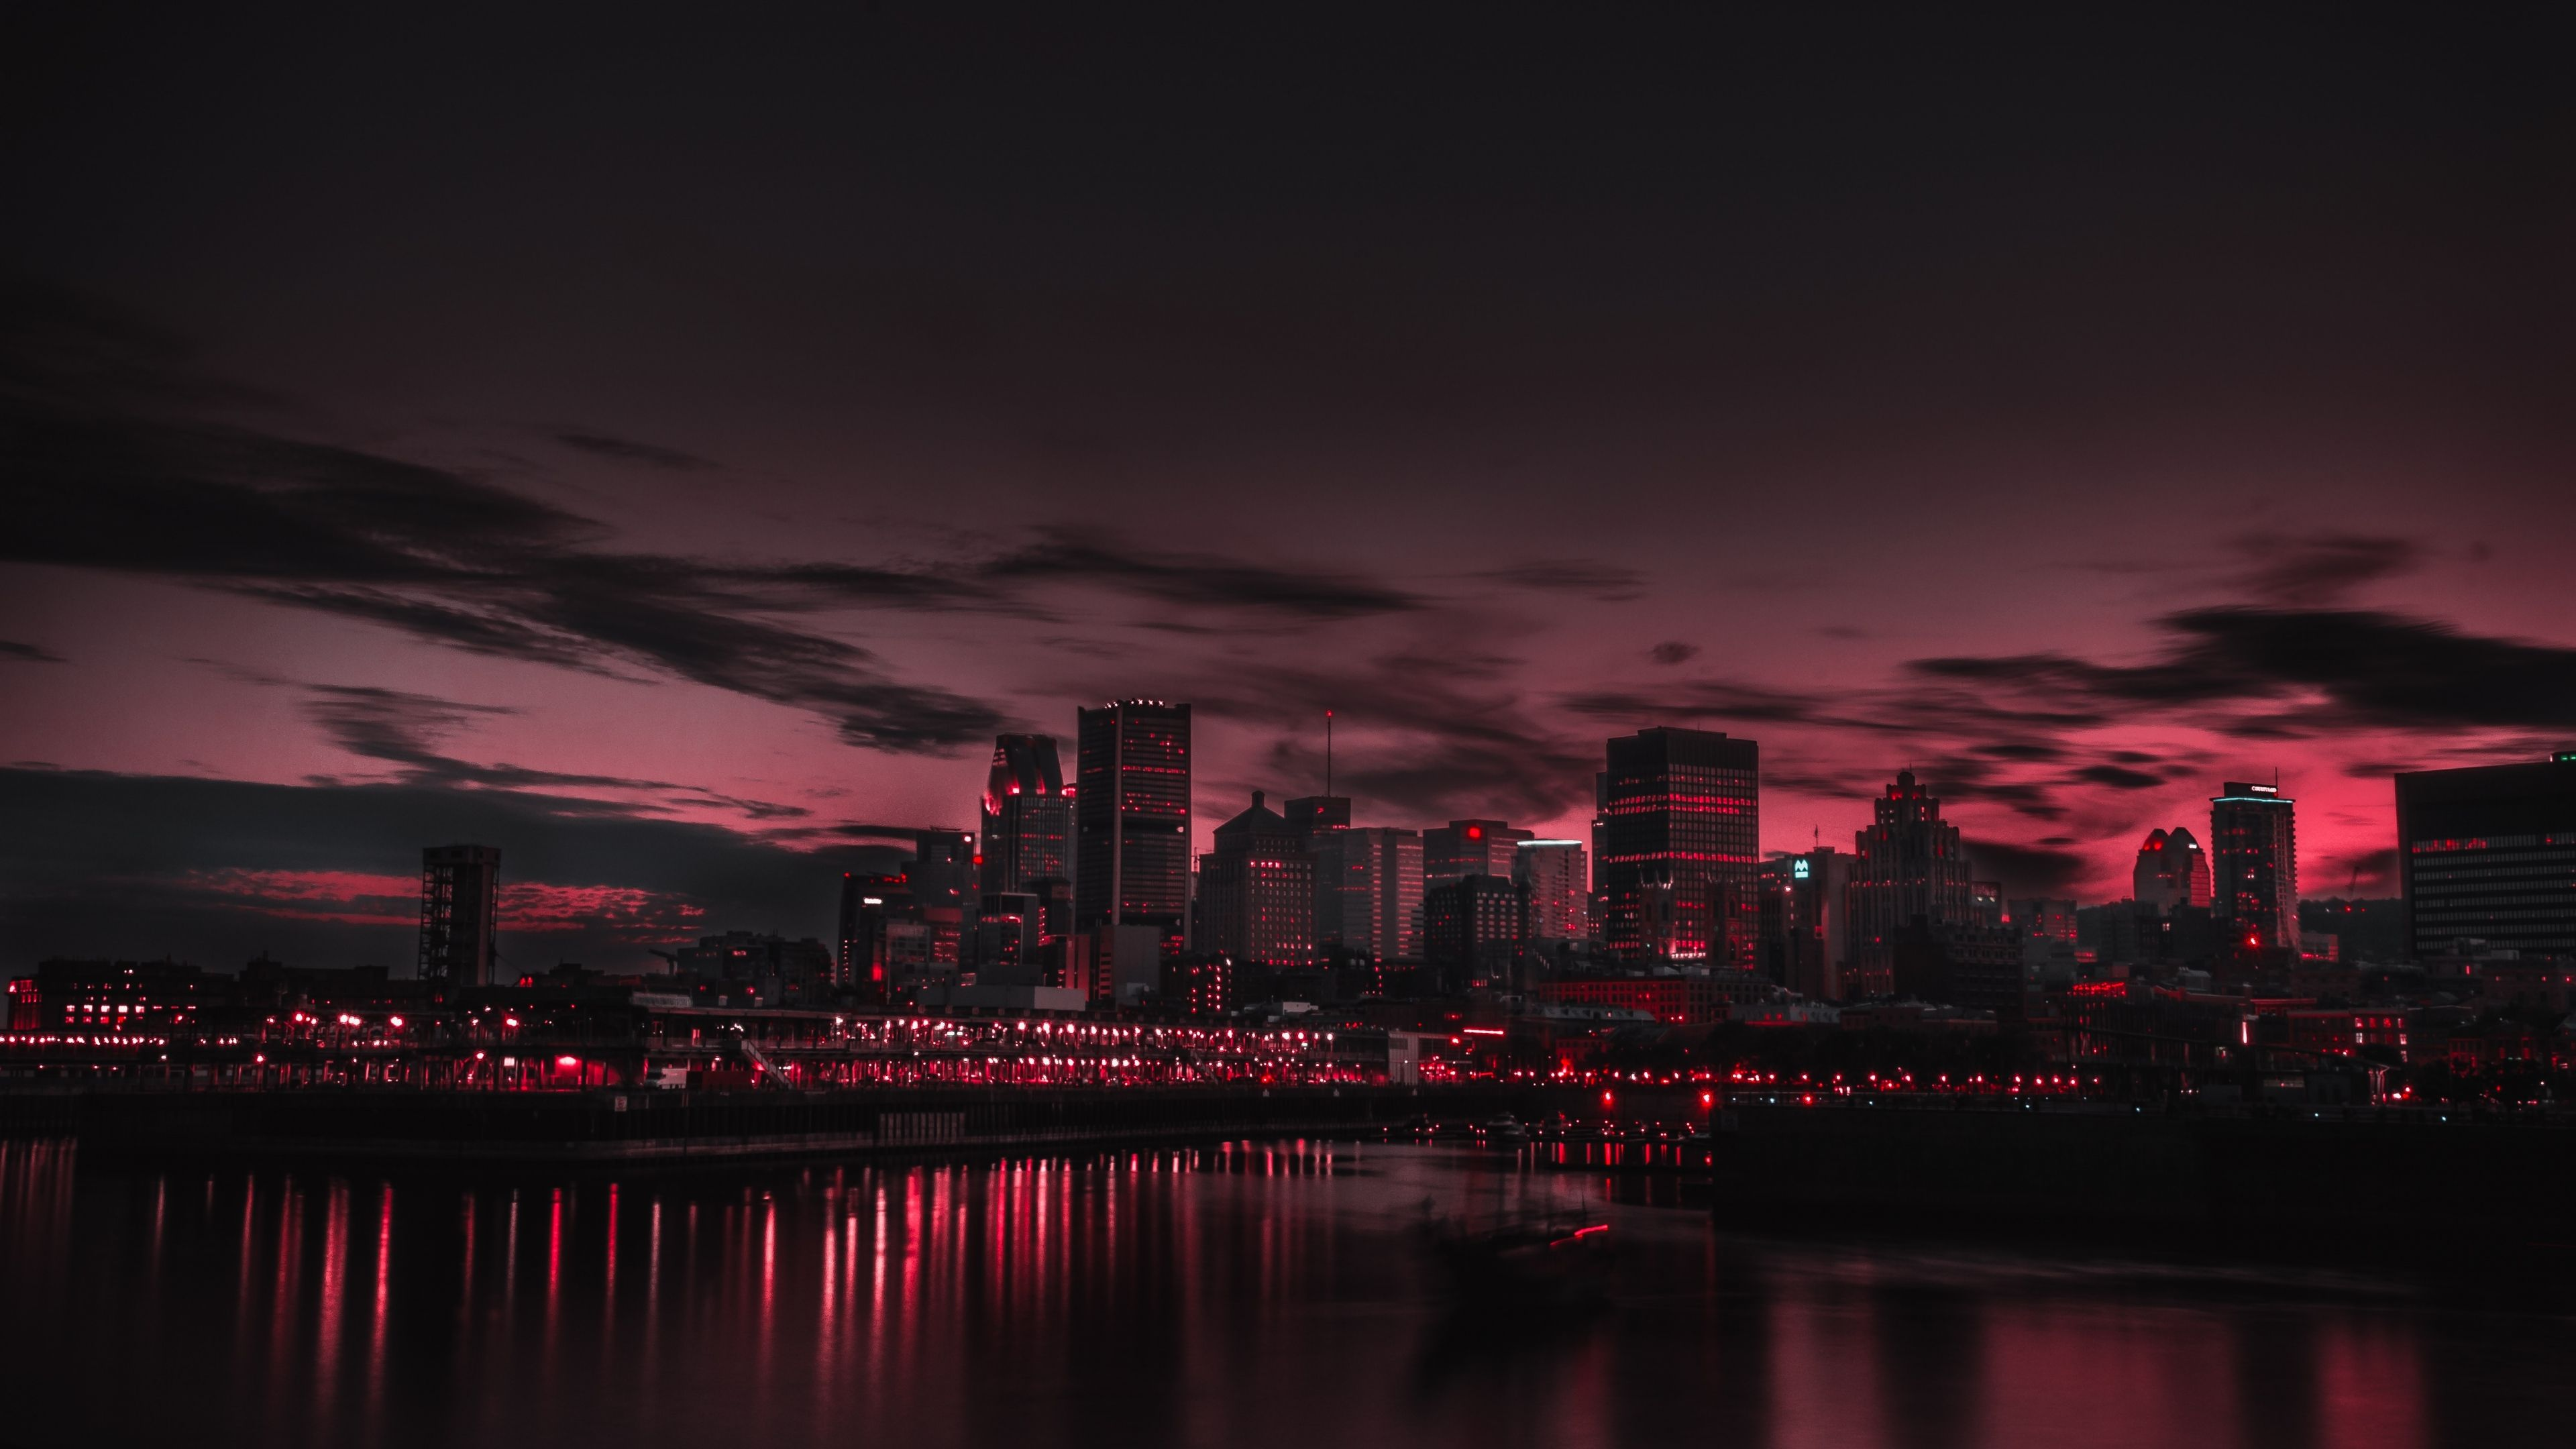 3840x2160 Wallpaper city, night, panorama Aesthetic